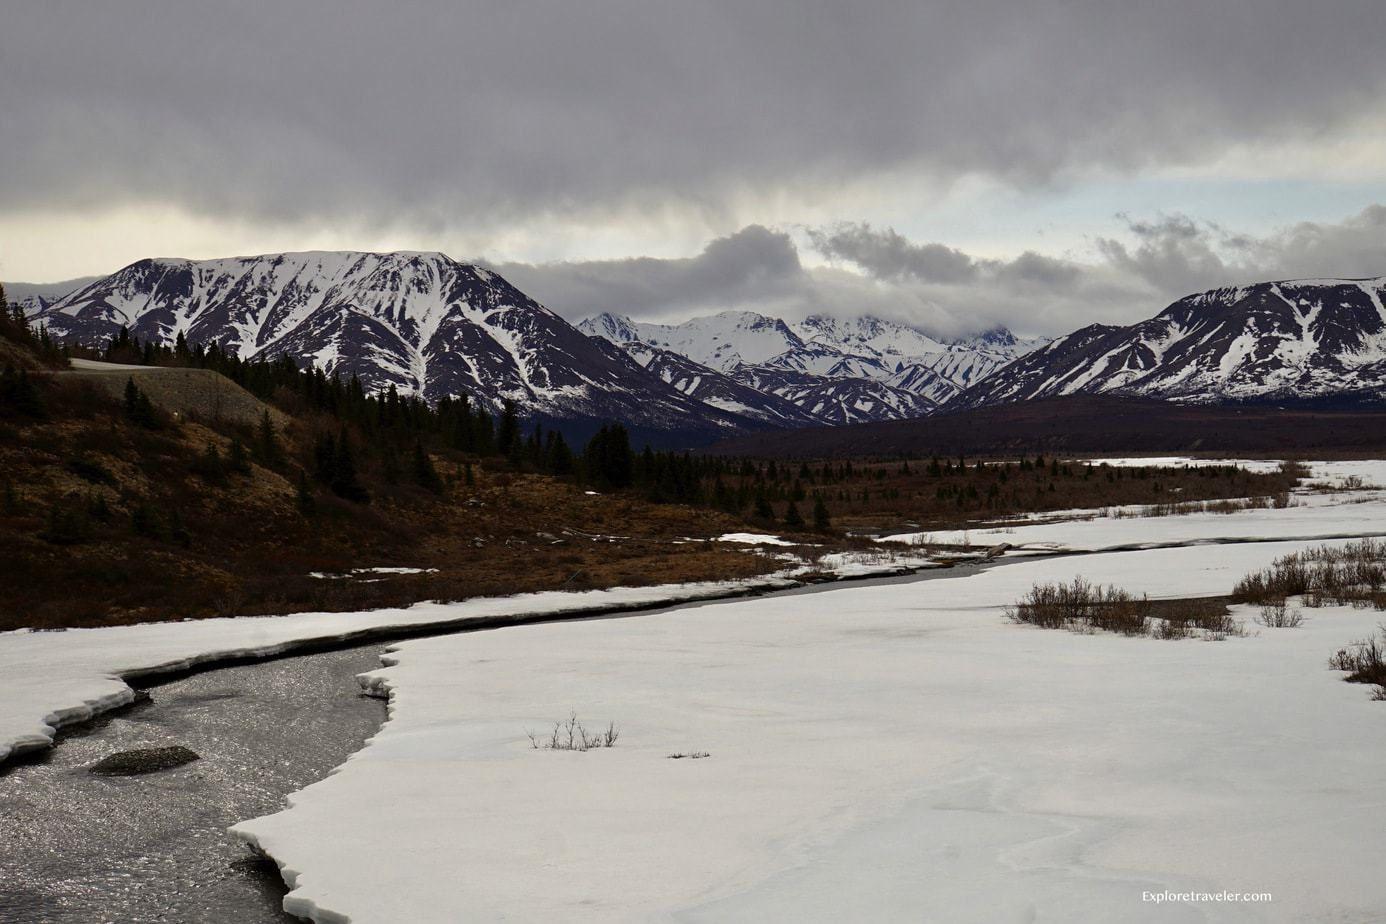 The spring thaw of the River and mountains Denali National Park